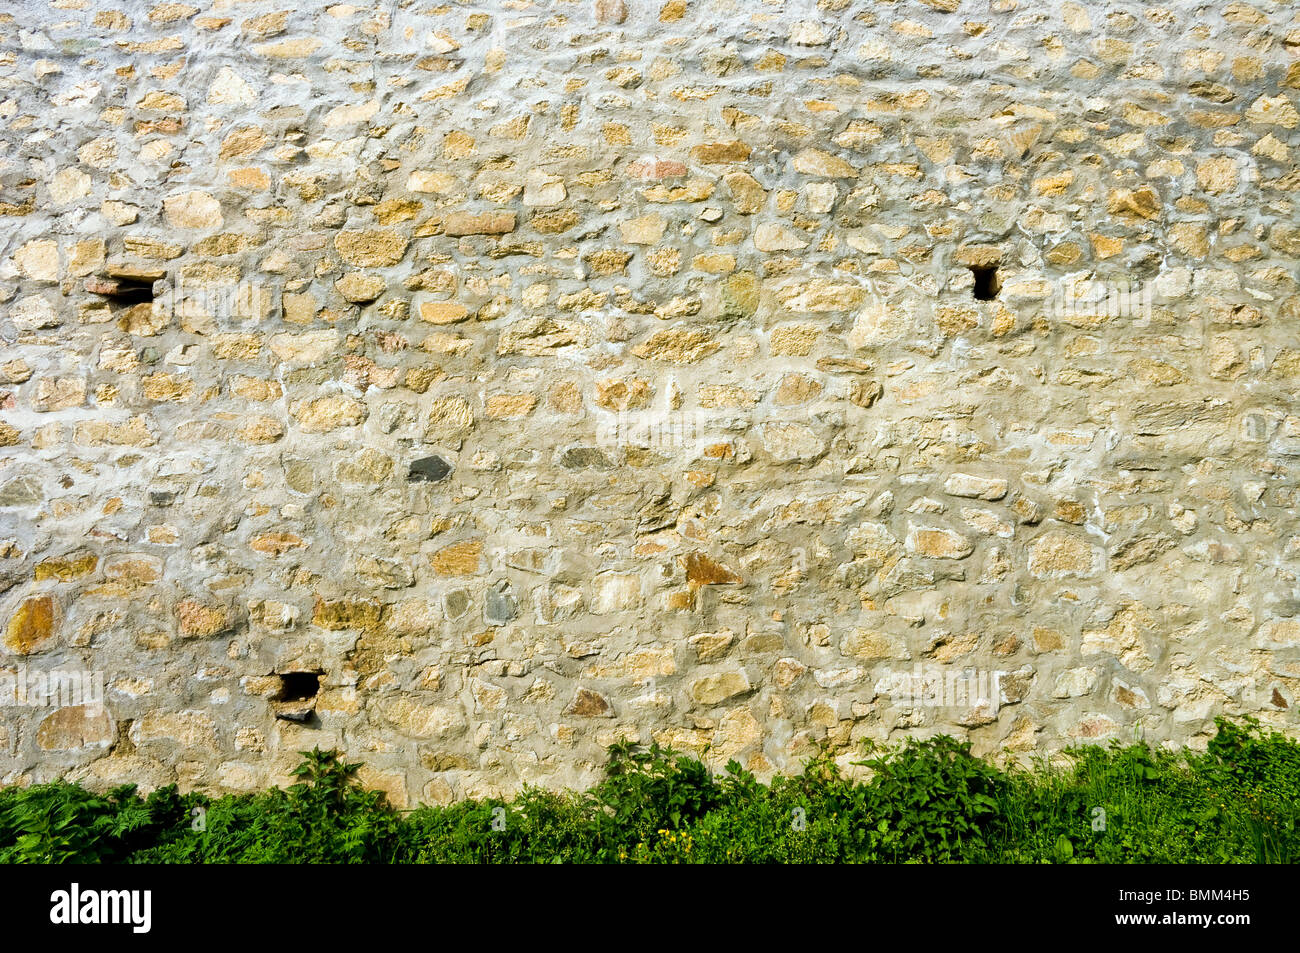 Stone masonry wall of the house. - Stock Image